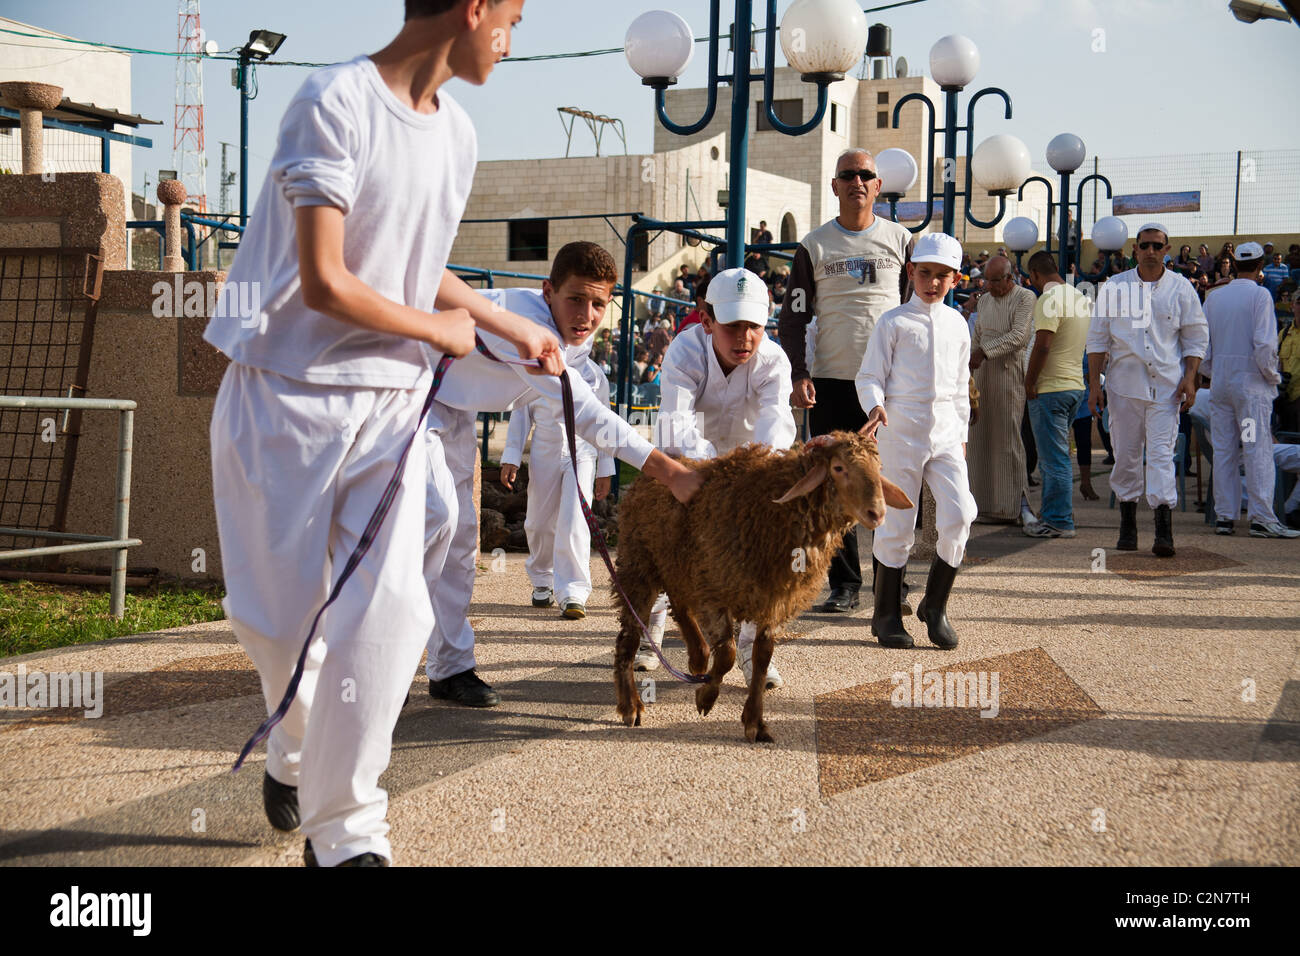 Young Samaritans deliver the lambs soon to be sacrificed for Passover. Mount Gerizim, Israel. 17/04/2011. Stock Photo